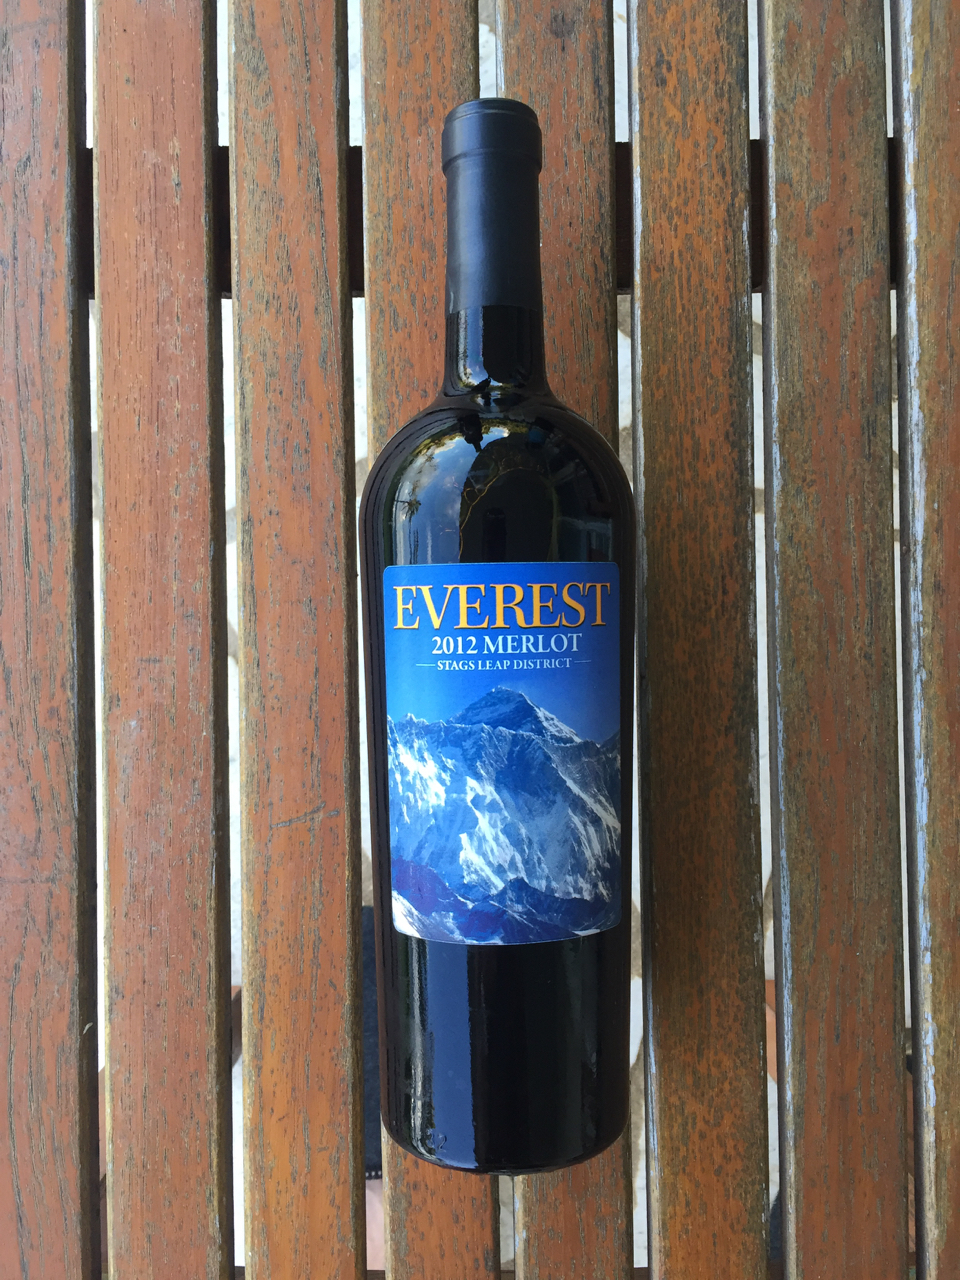 - Our 2012 cab and merlot with a label inspired by Mount Everest.